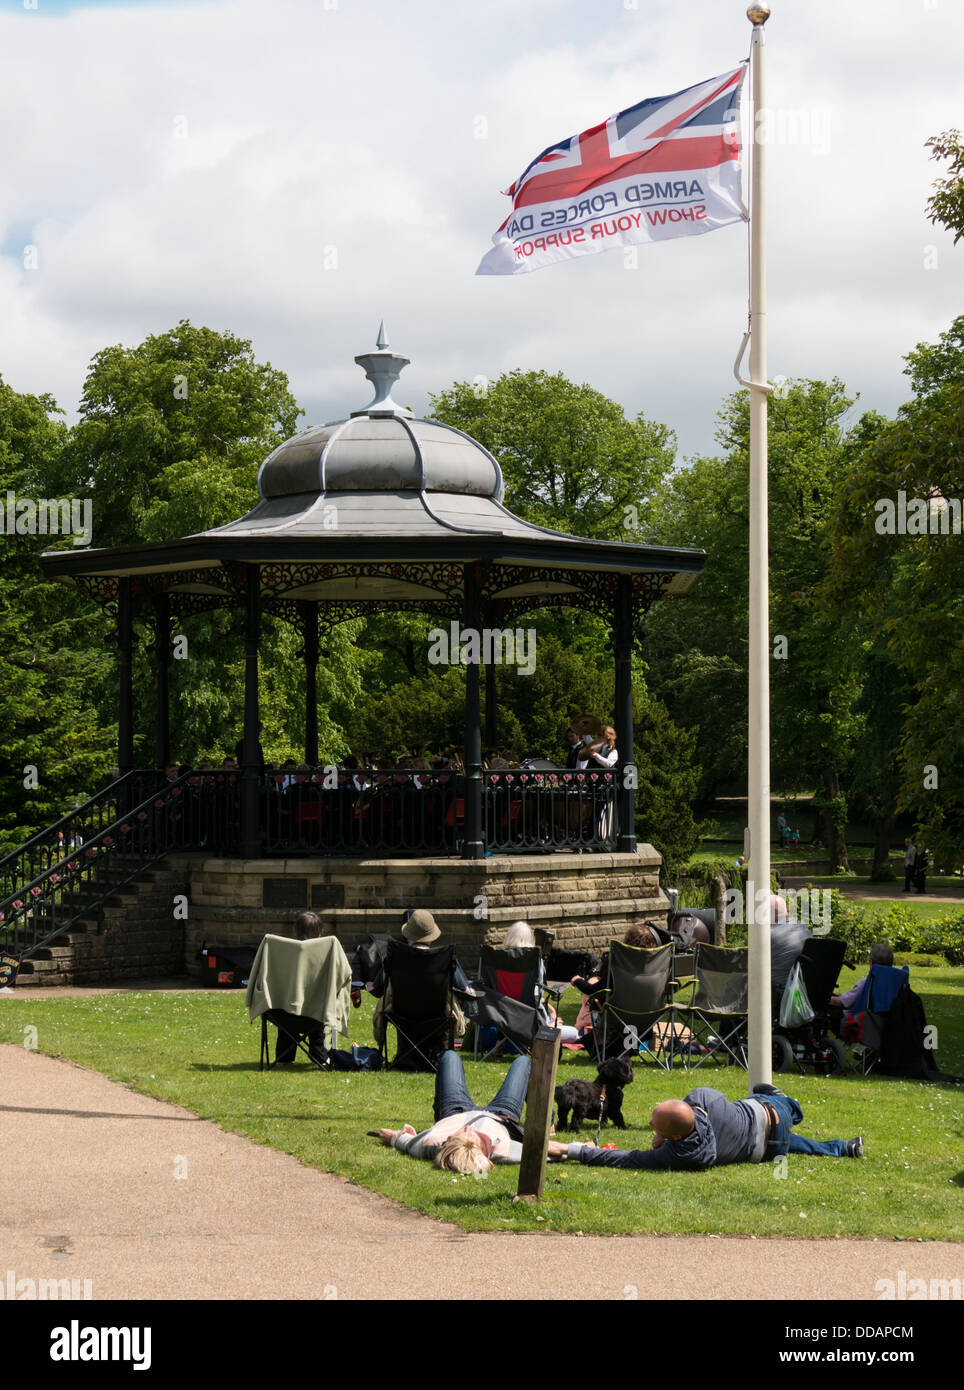 People sitting in front of the Bandstand listening to brass bands  in the Pavilion Gardens Buxton Derbyshire Peak - Stock Image